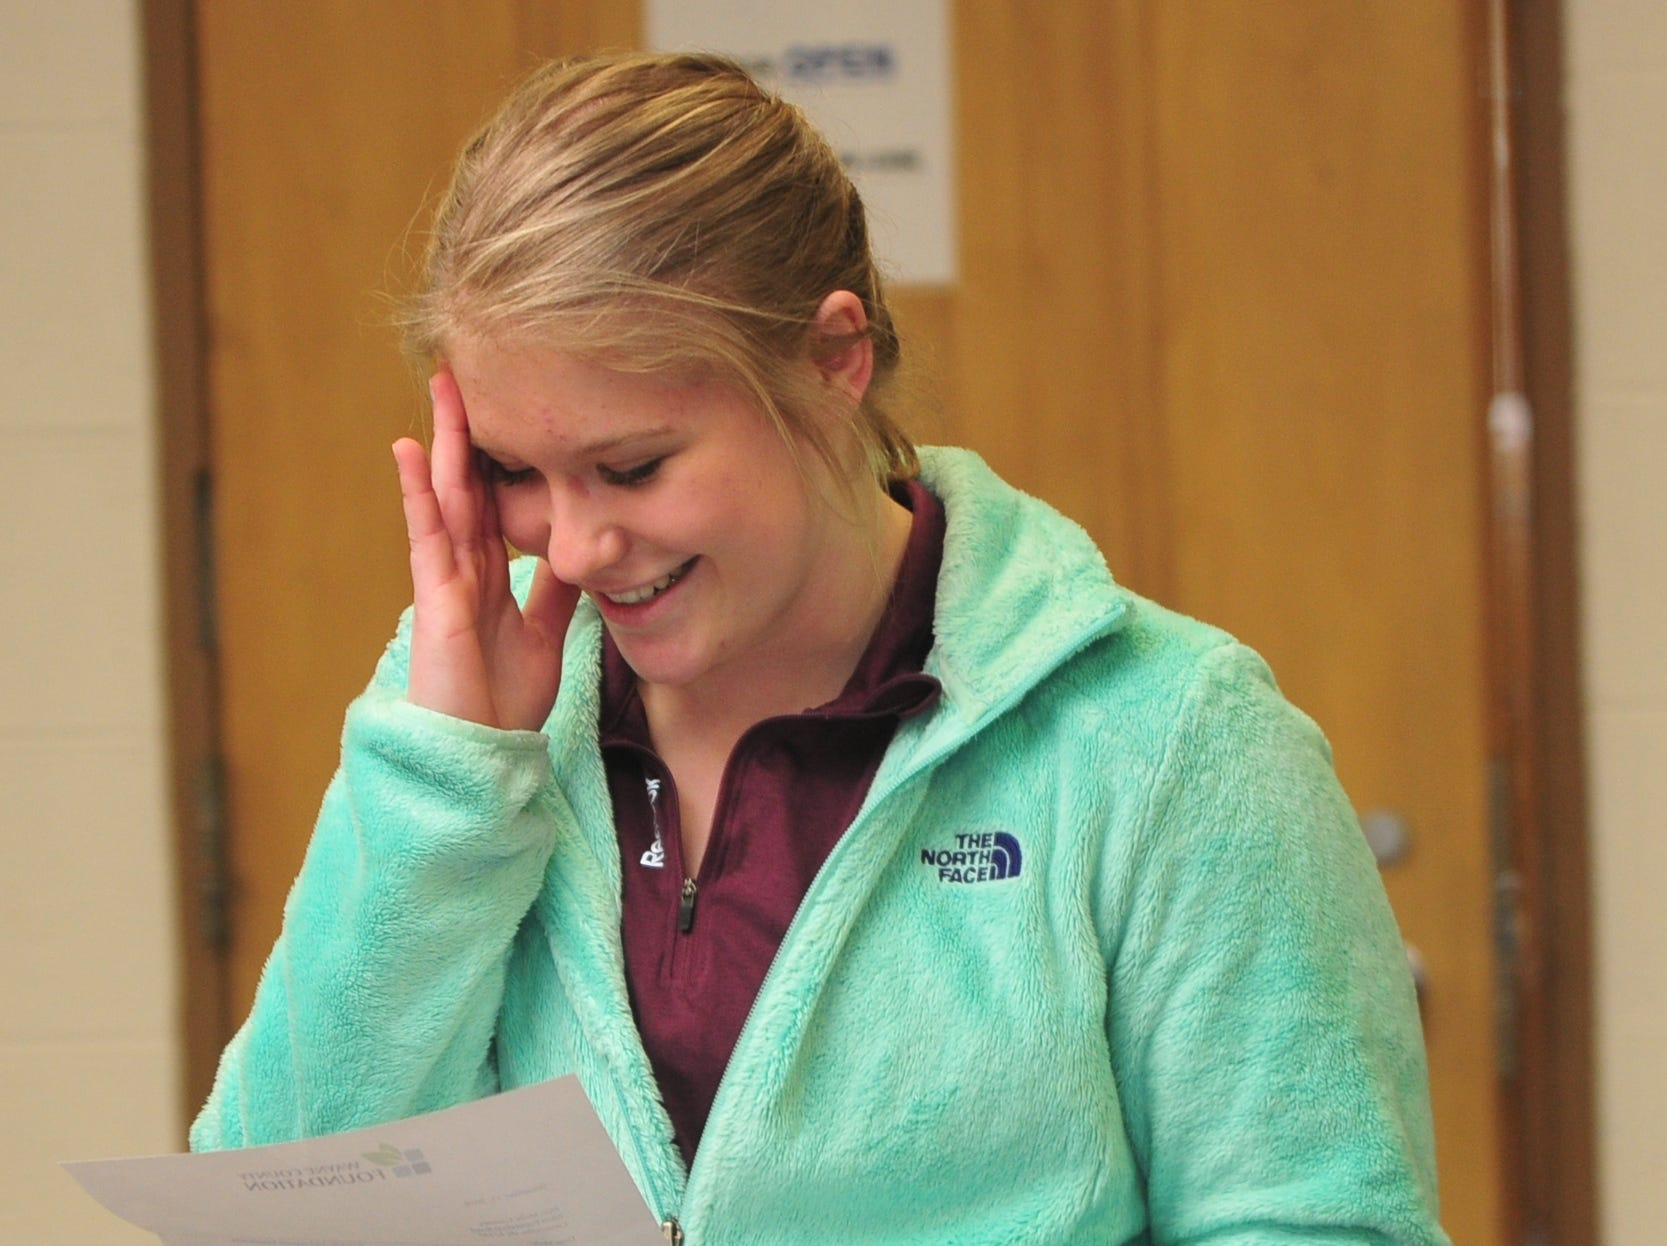 Centerville High School senior Molly Coomes reacts while reading her letter notifying her that she is a recipient of the Wayne County Foundation's Lily Endowment Community Scholarship at Centerville High School Tuesday, Dec. 11, 2018.